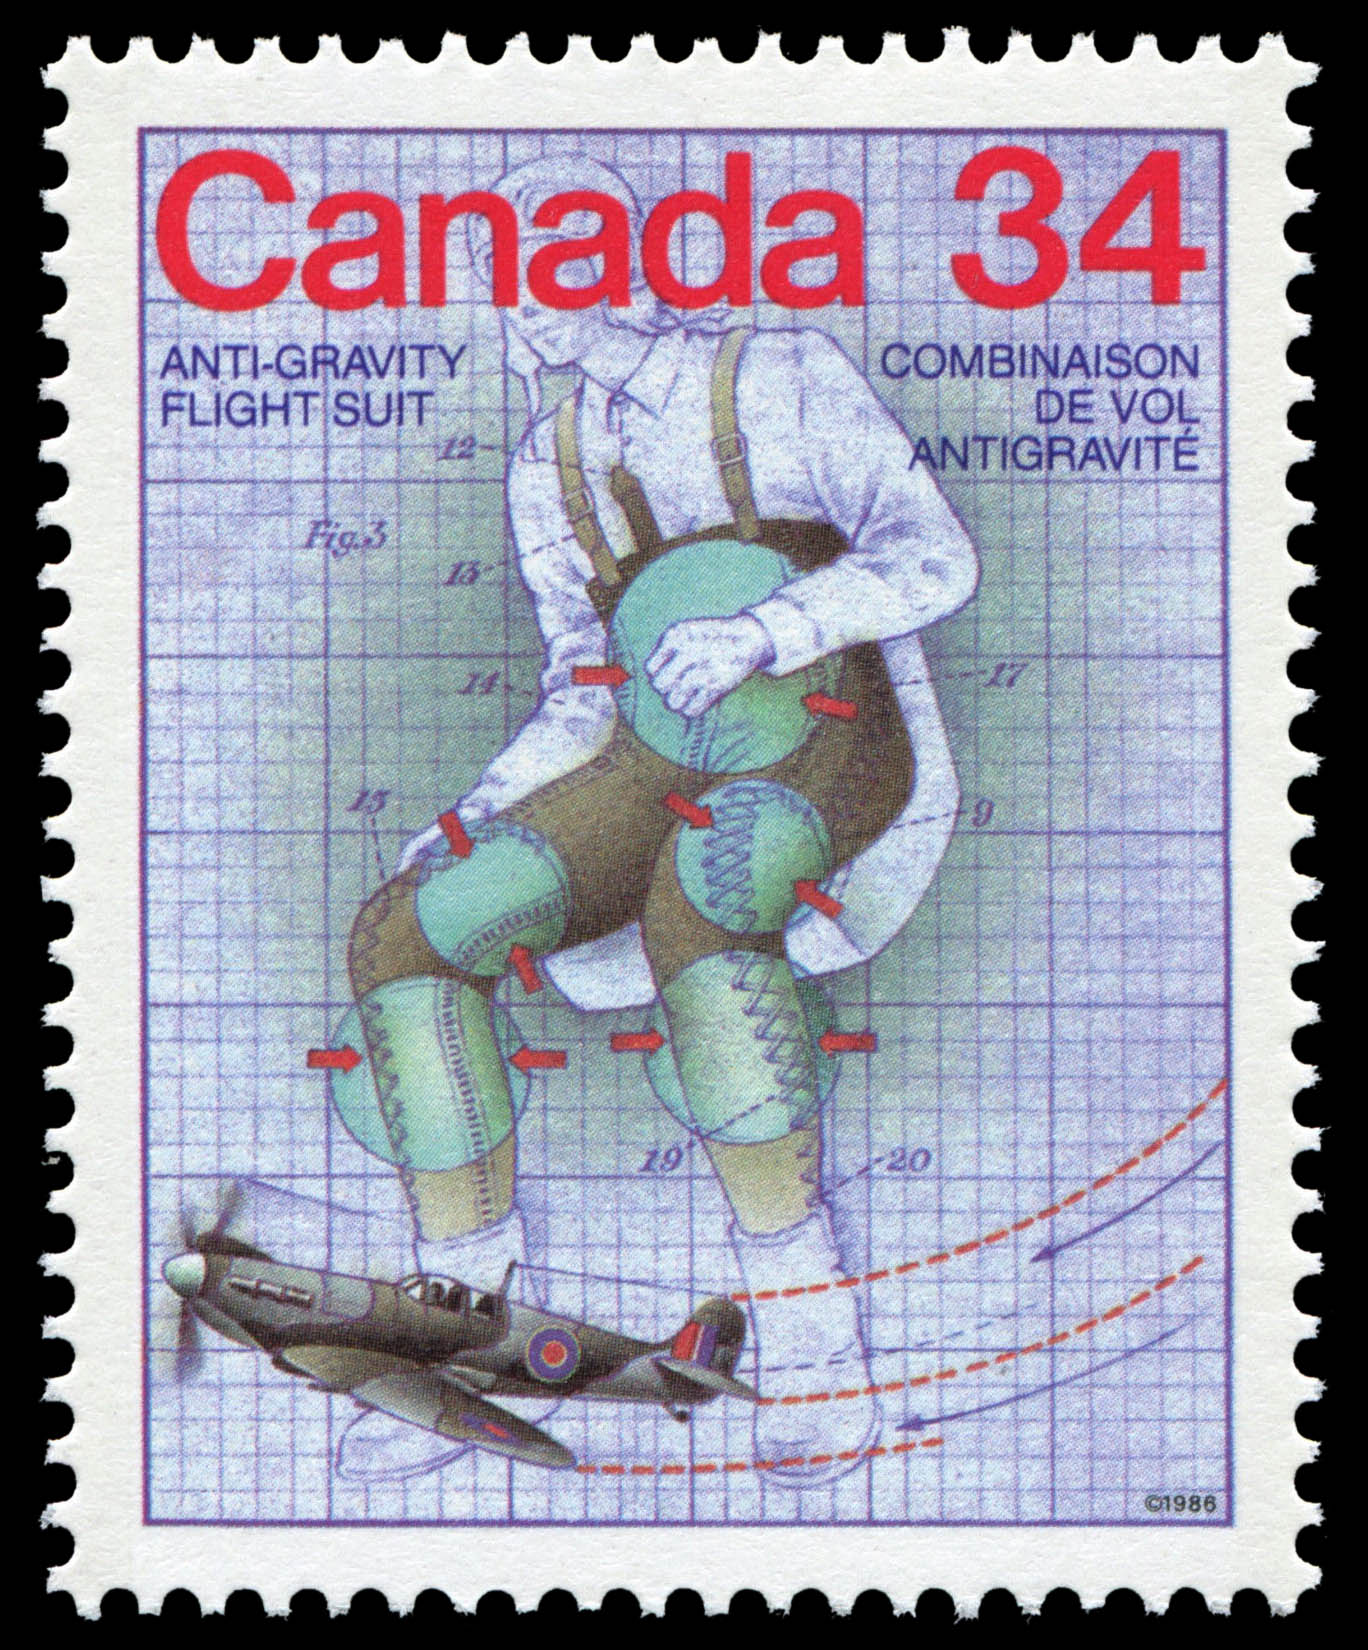 Canada Post issued a stamp in honour of Dr. Wilbur Rounding Franks to celebrate Canada Day in 1986. PHOTO: Canada Post